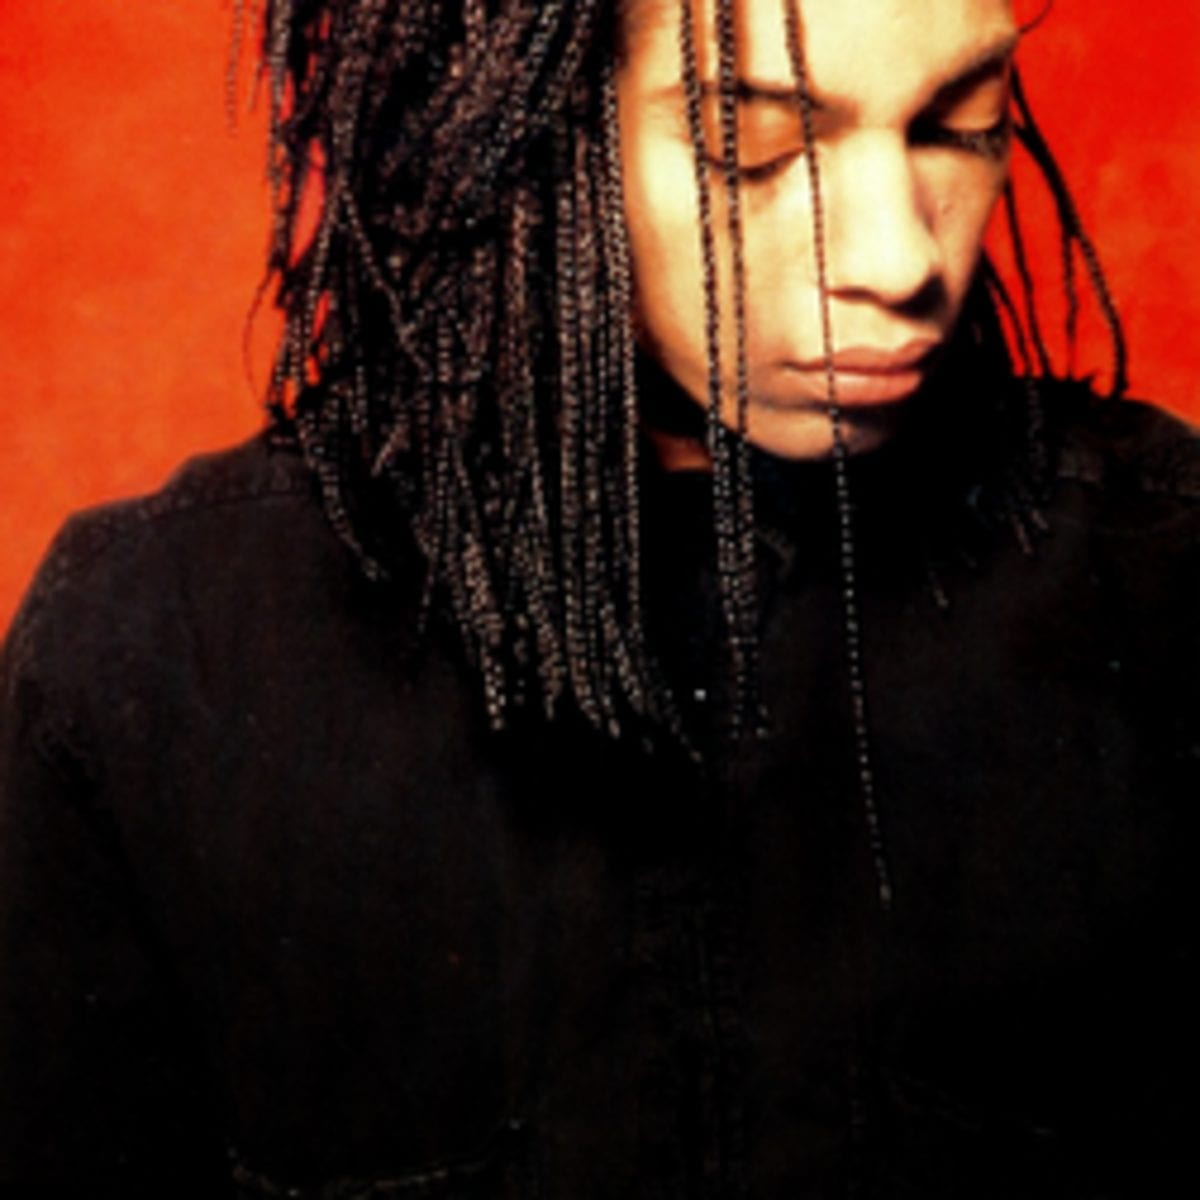 Terence Trent D'Arby with his eyes closed